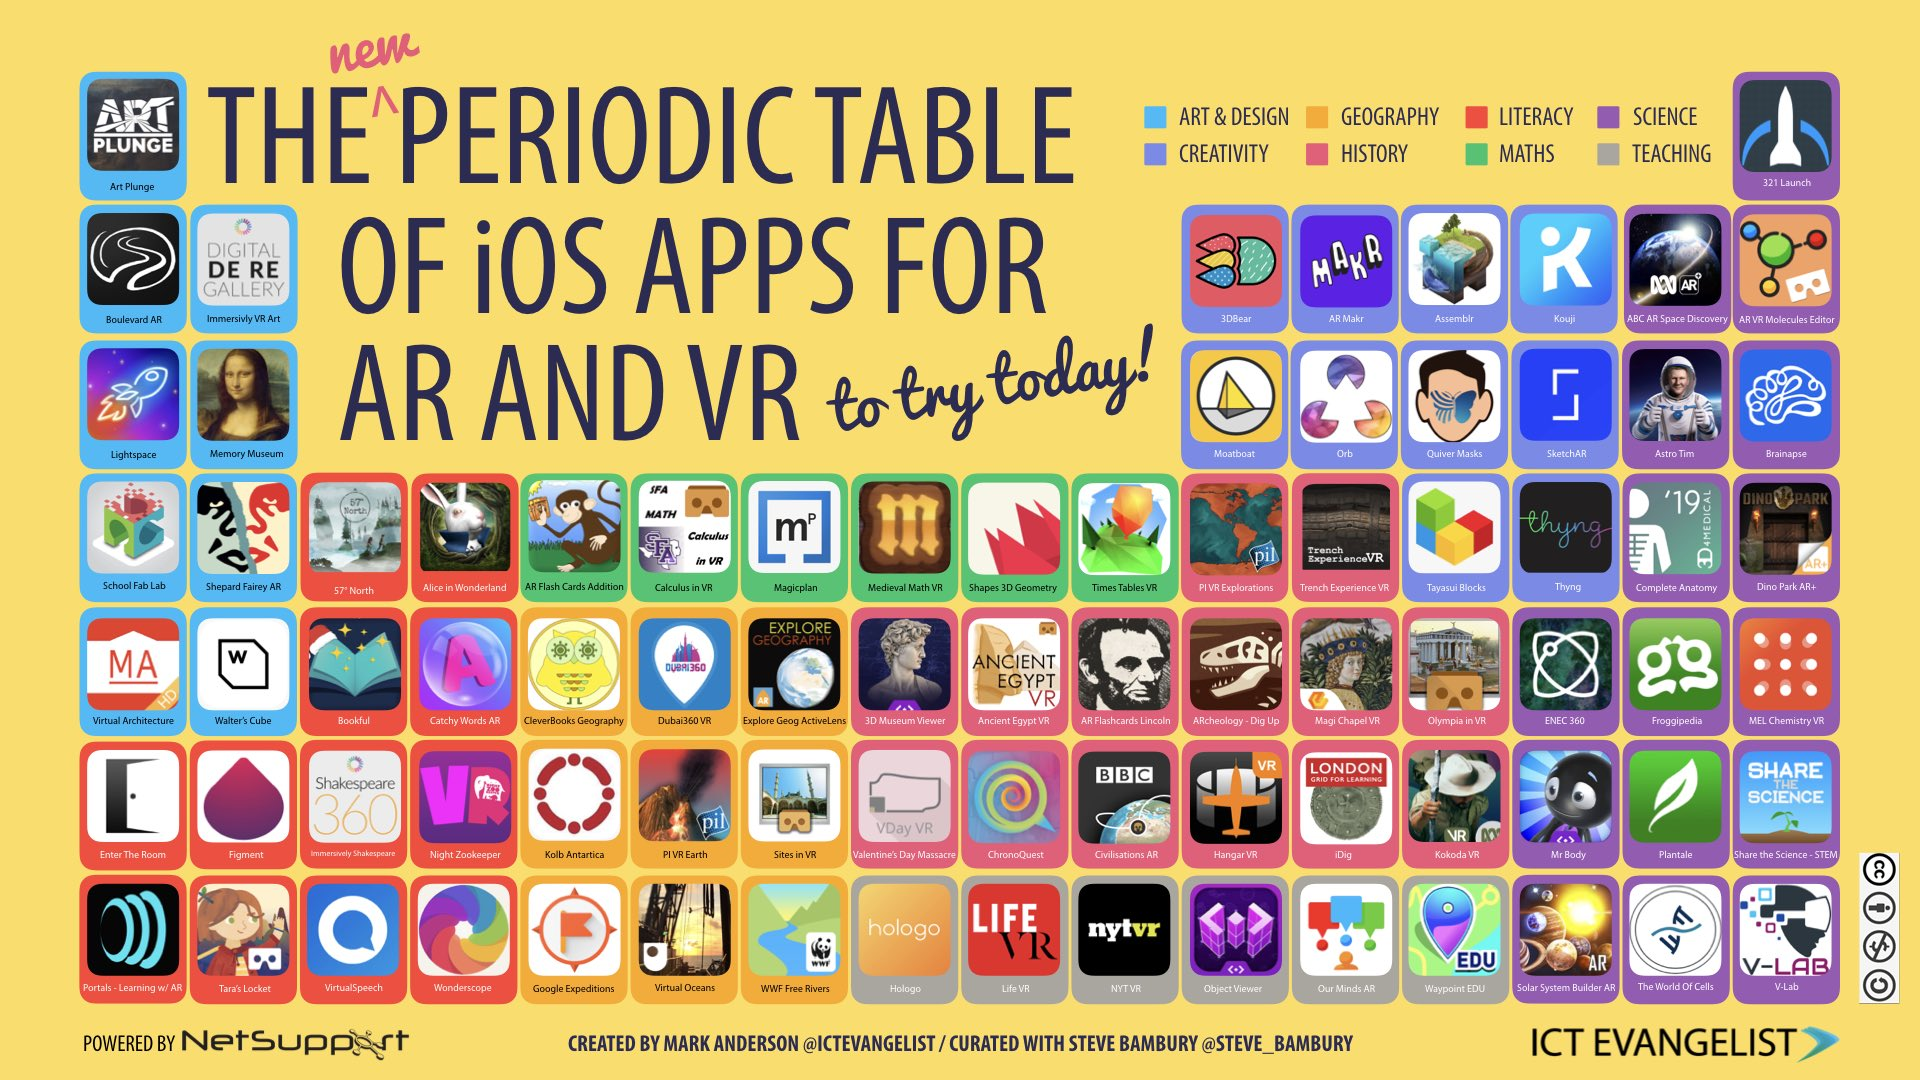 I'm very pleased to be able to unveil the updated Periodic Table of iOS Apps for AR & VR 2019 🤔💡🏆💫  Another fab collaboration with @steve_bambury, we hope you find it useful! Blog post to follow!  #AppleEDUchat #AppleTeacher #BETT2019 #ISTE19 #FETC #ARVRinEDU https://t.co/AINe3TNj4w